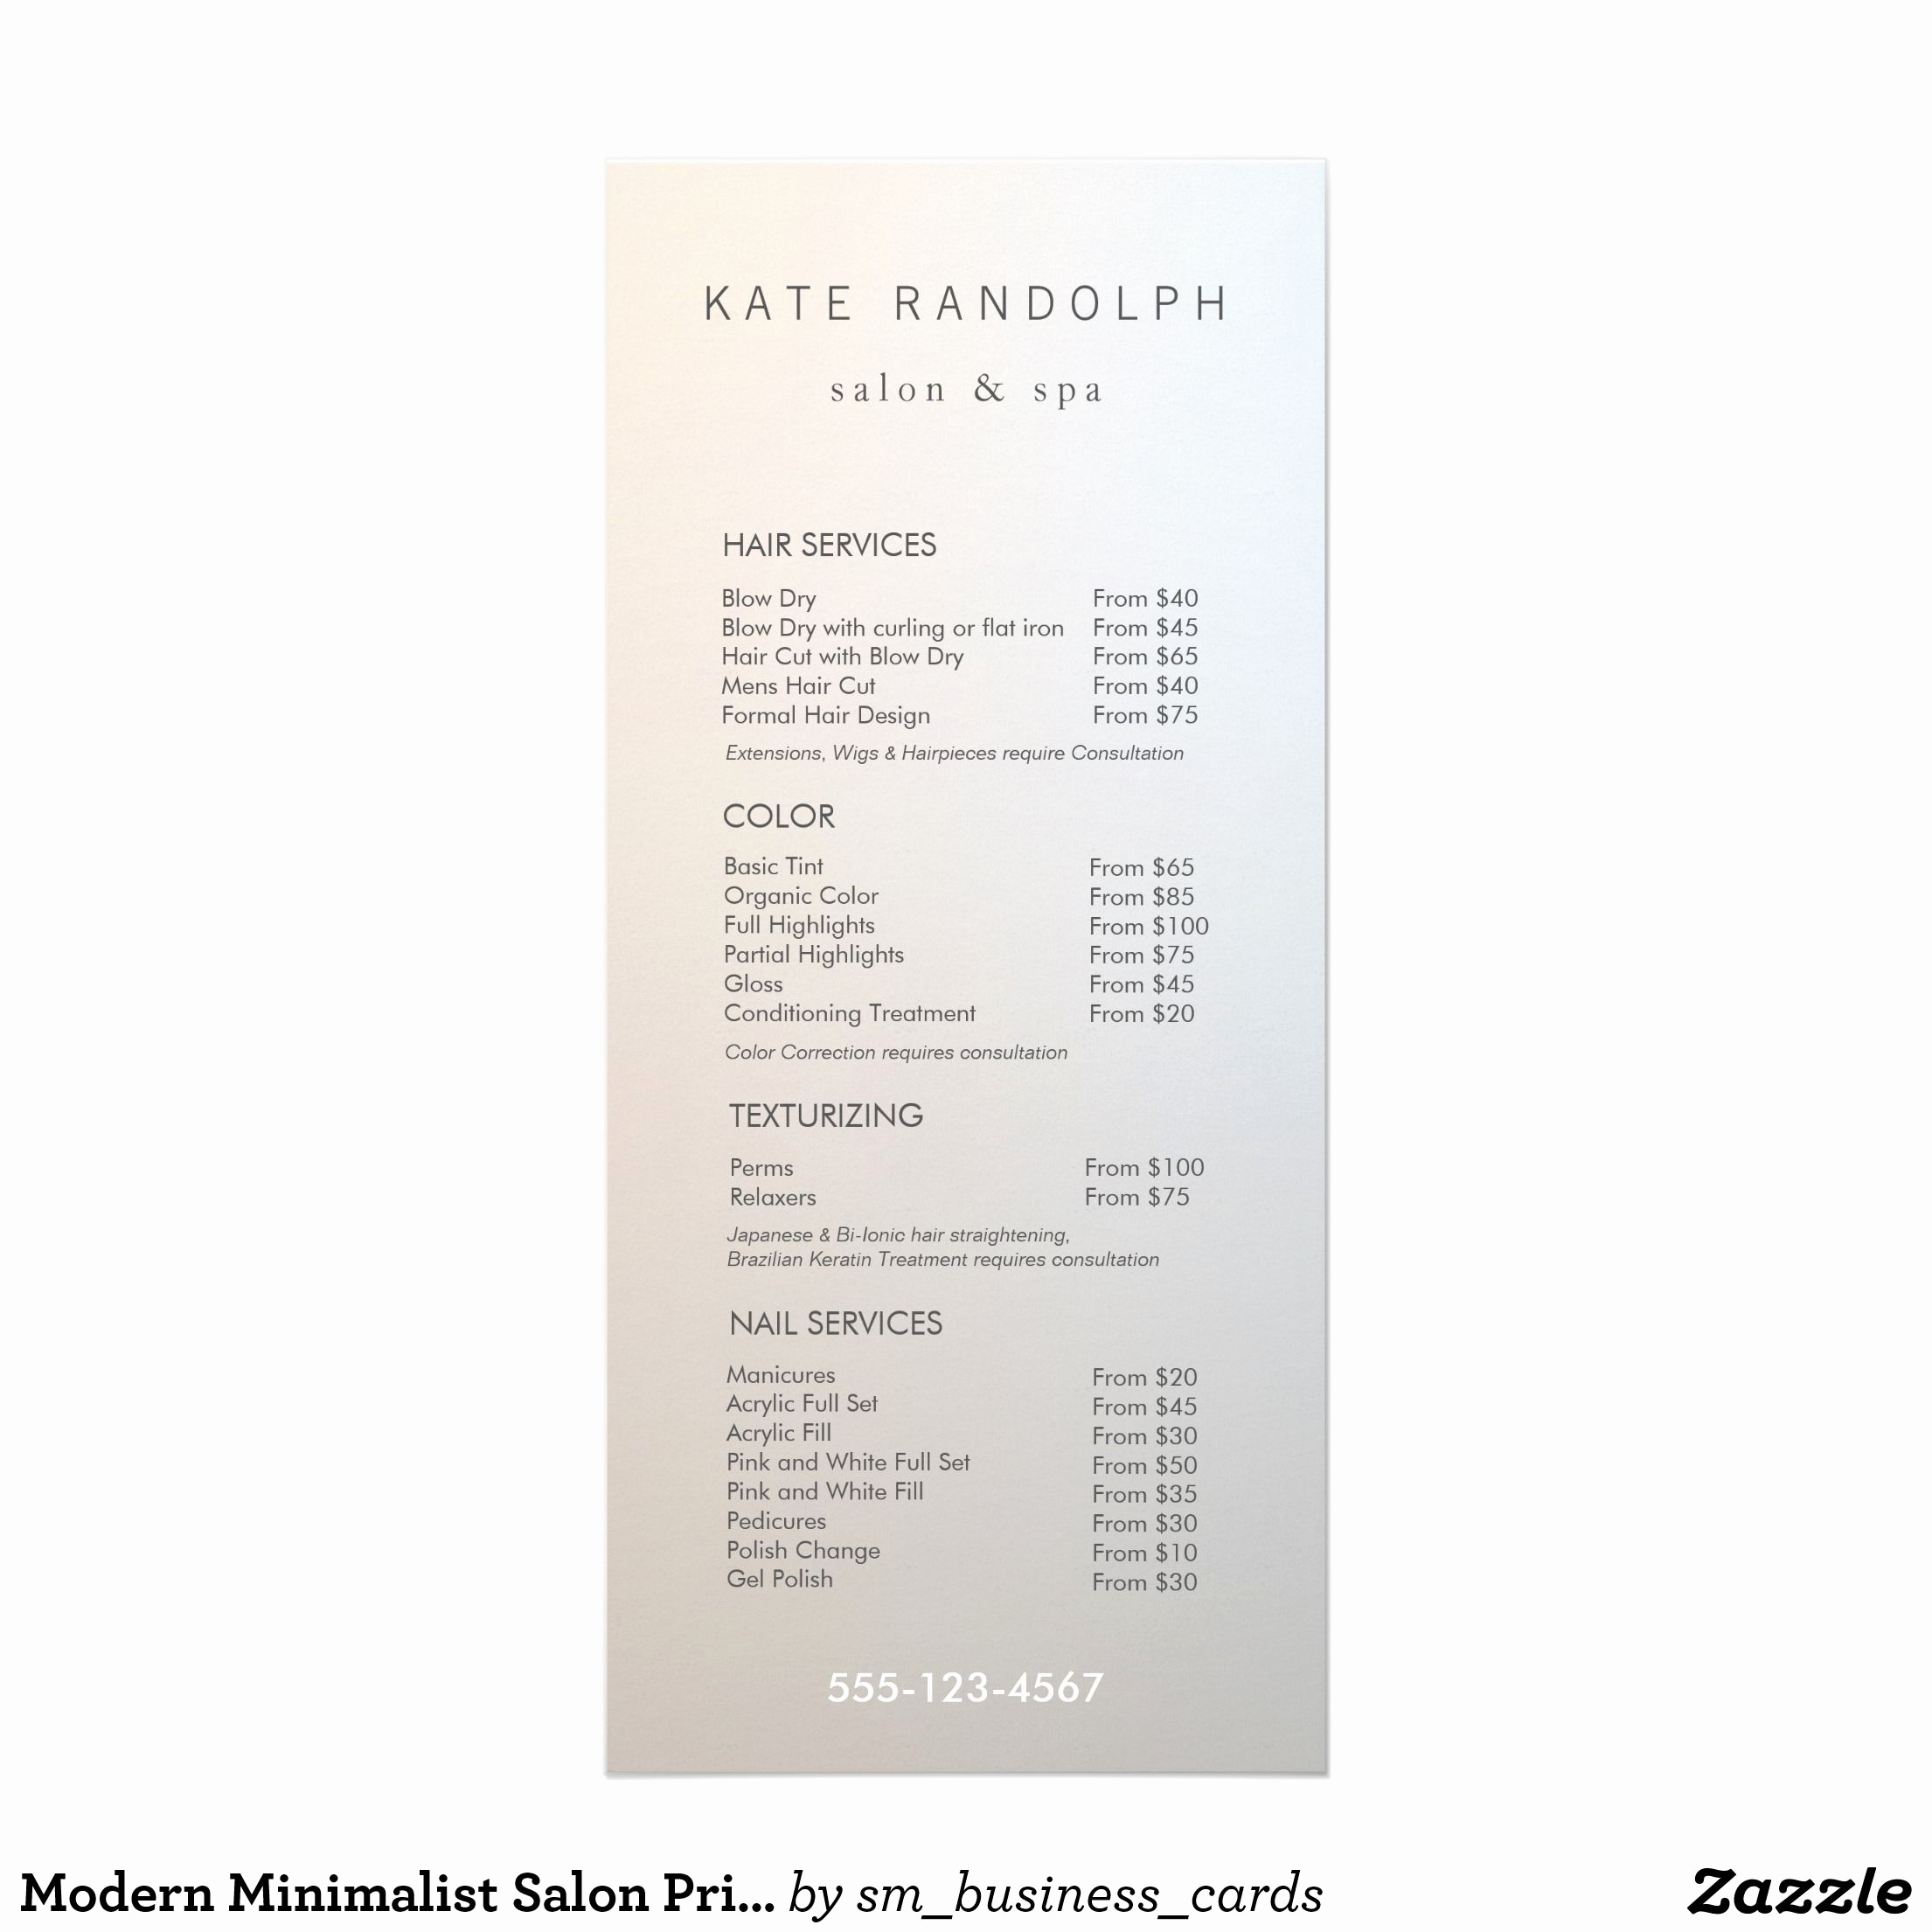 Salon Services Menu Template New Modern Minimalist Salon Price List Service Menu 25 Cards